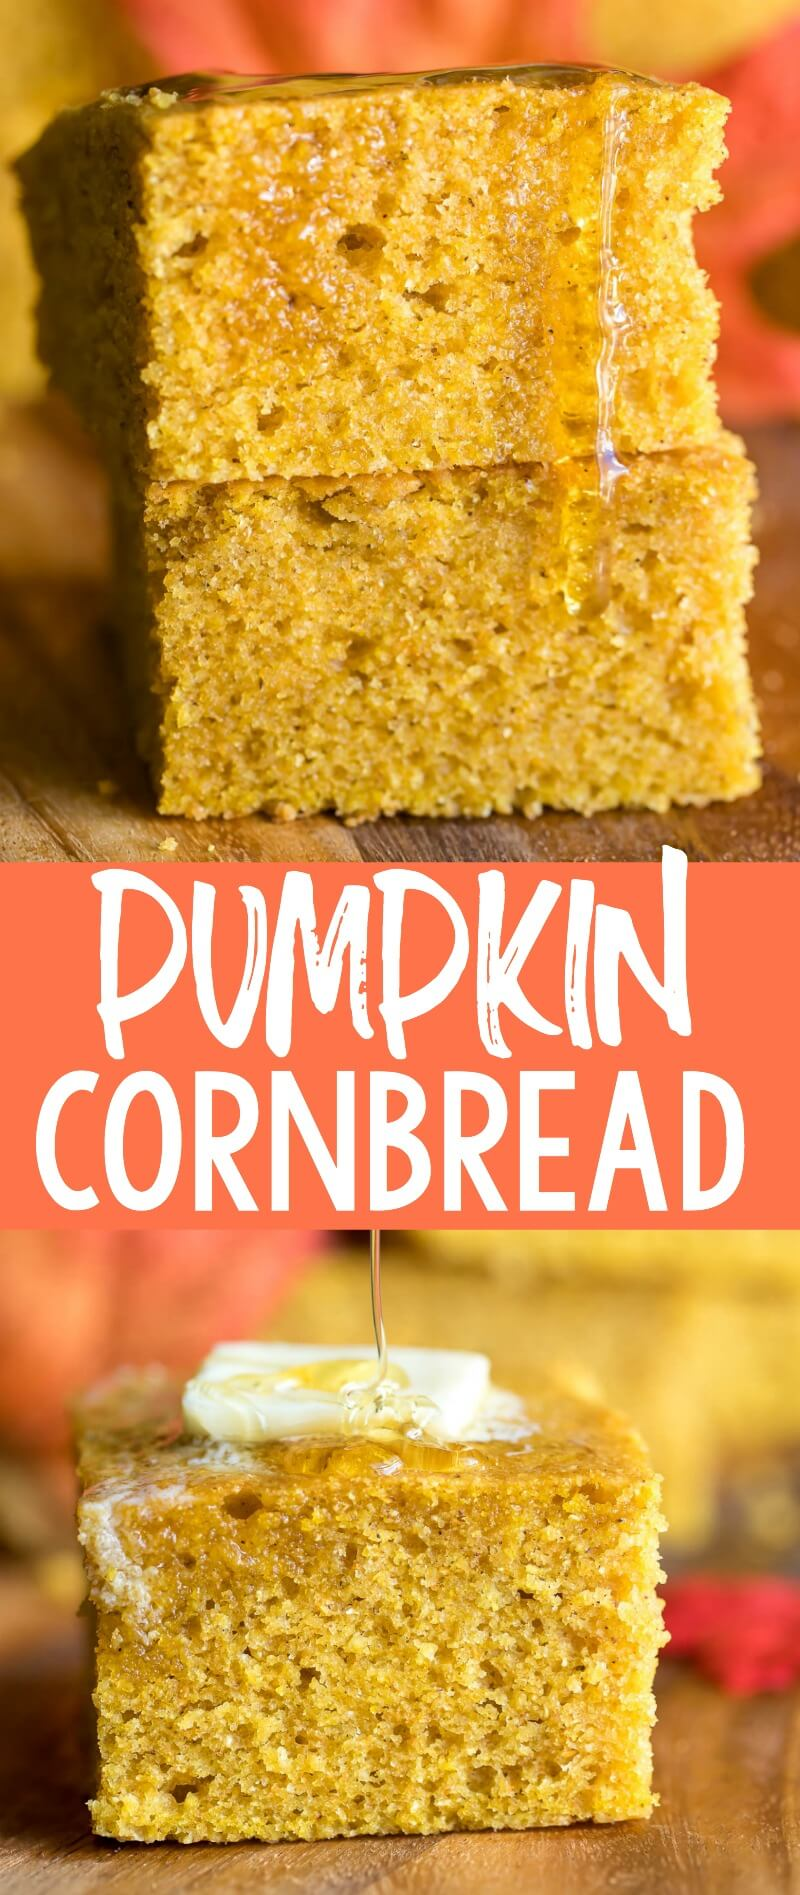 Fluffy homemade Pumpkin Cornbread kissed with a tasty blend of brown butter, pumpkin, and pumpkin spice. #pumpkin #pumpkinspice #cornbread #brownbutter #comfortfood #fall #vegetarian